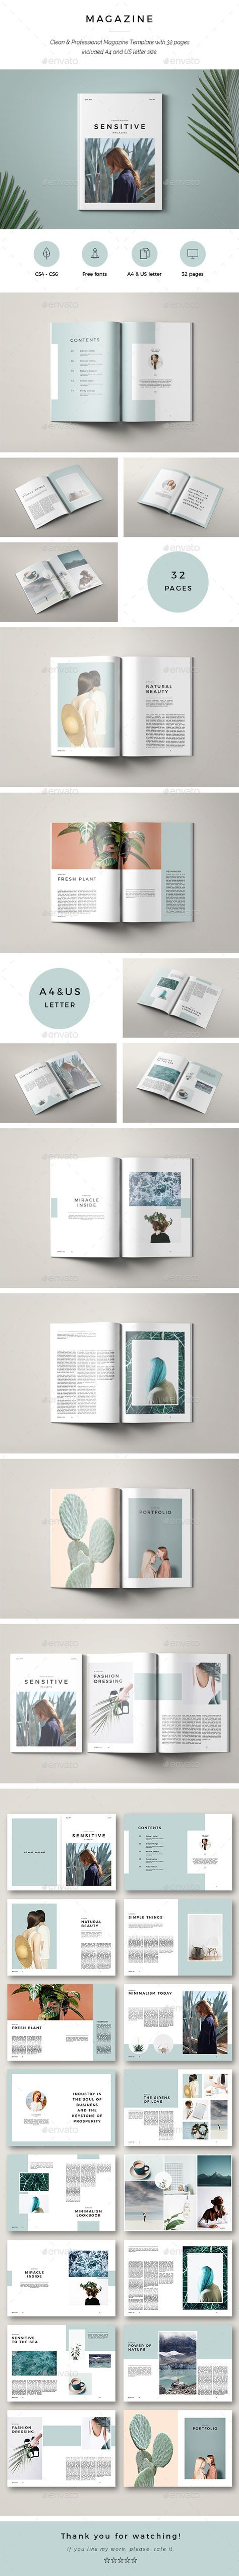 Sensitive Minimal Magazine — InDesign INDD #graphic design #marketing • Download ➝ https://graphicriver.net/item/sensitive-minimal-magazine/19762422?ref=pxcr